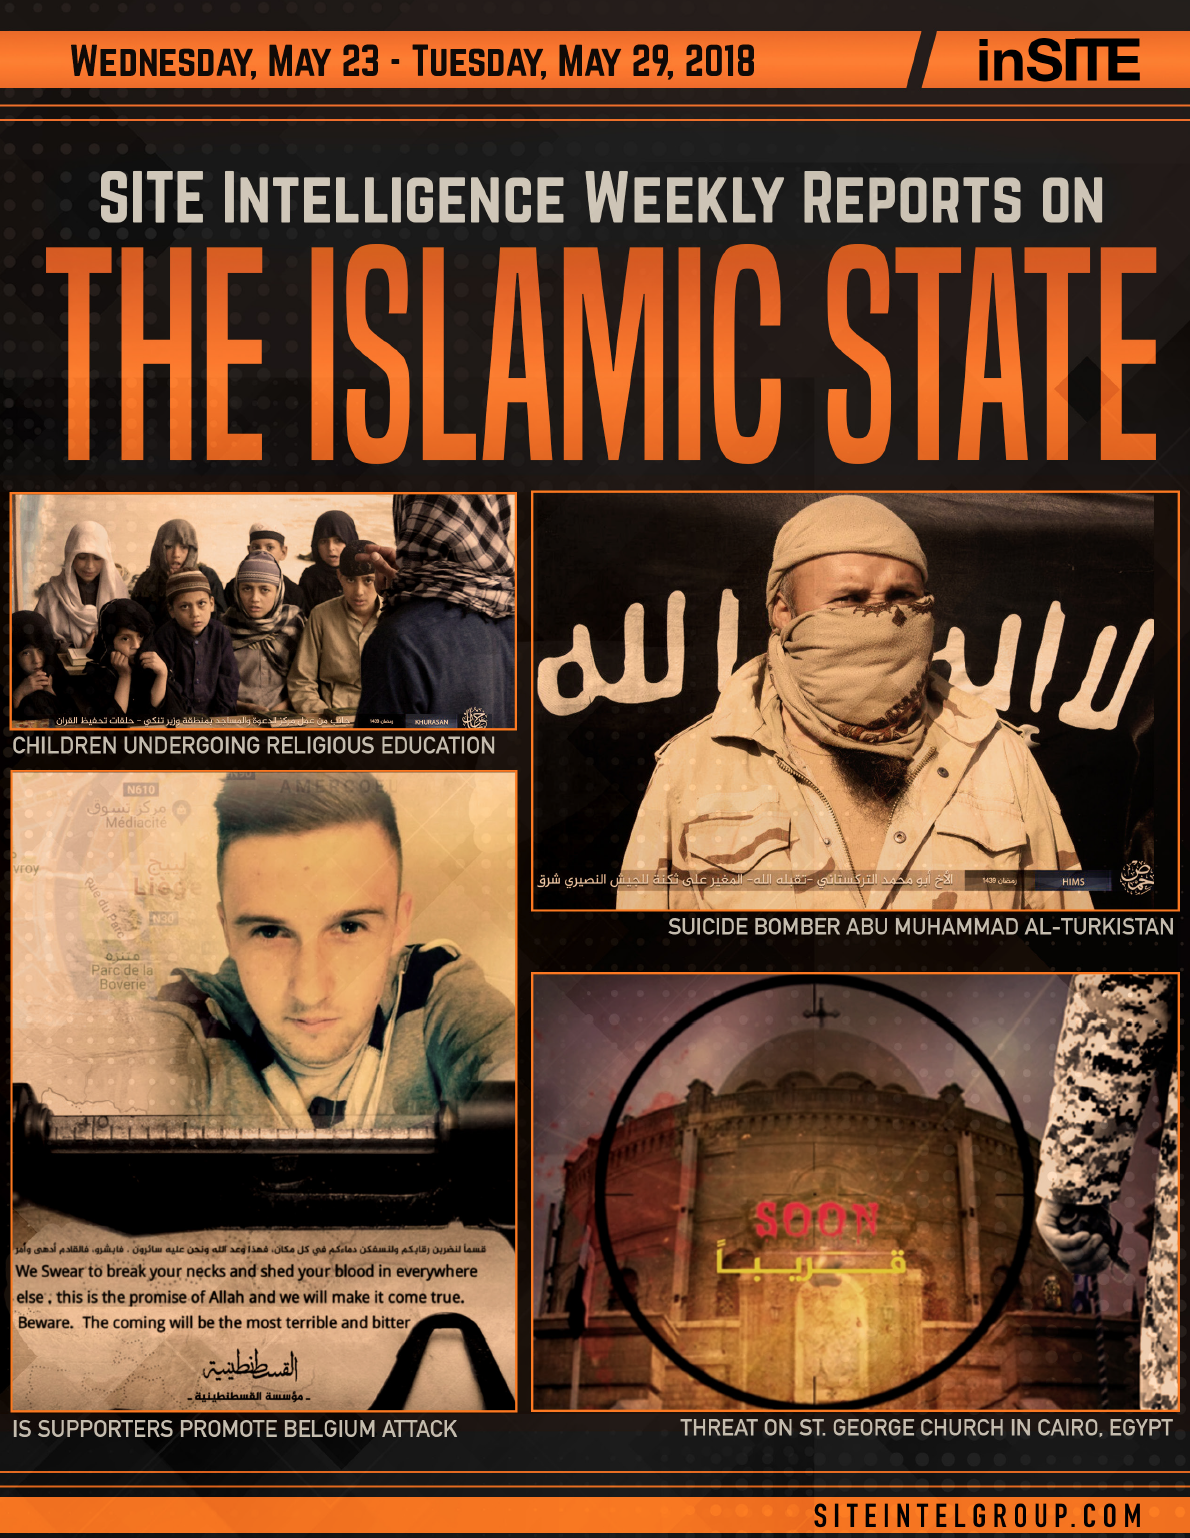 Weekly inSITE on the Islamic State for May 23-29, 2018